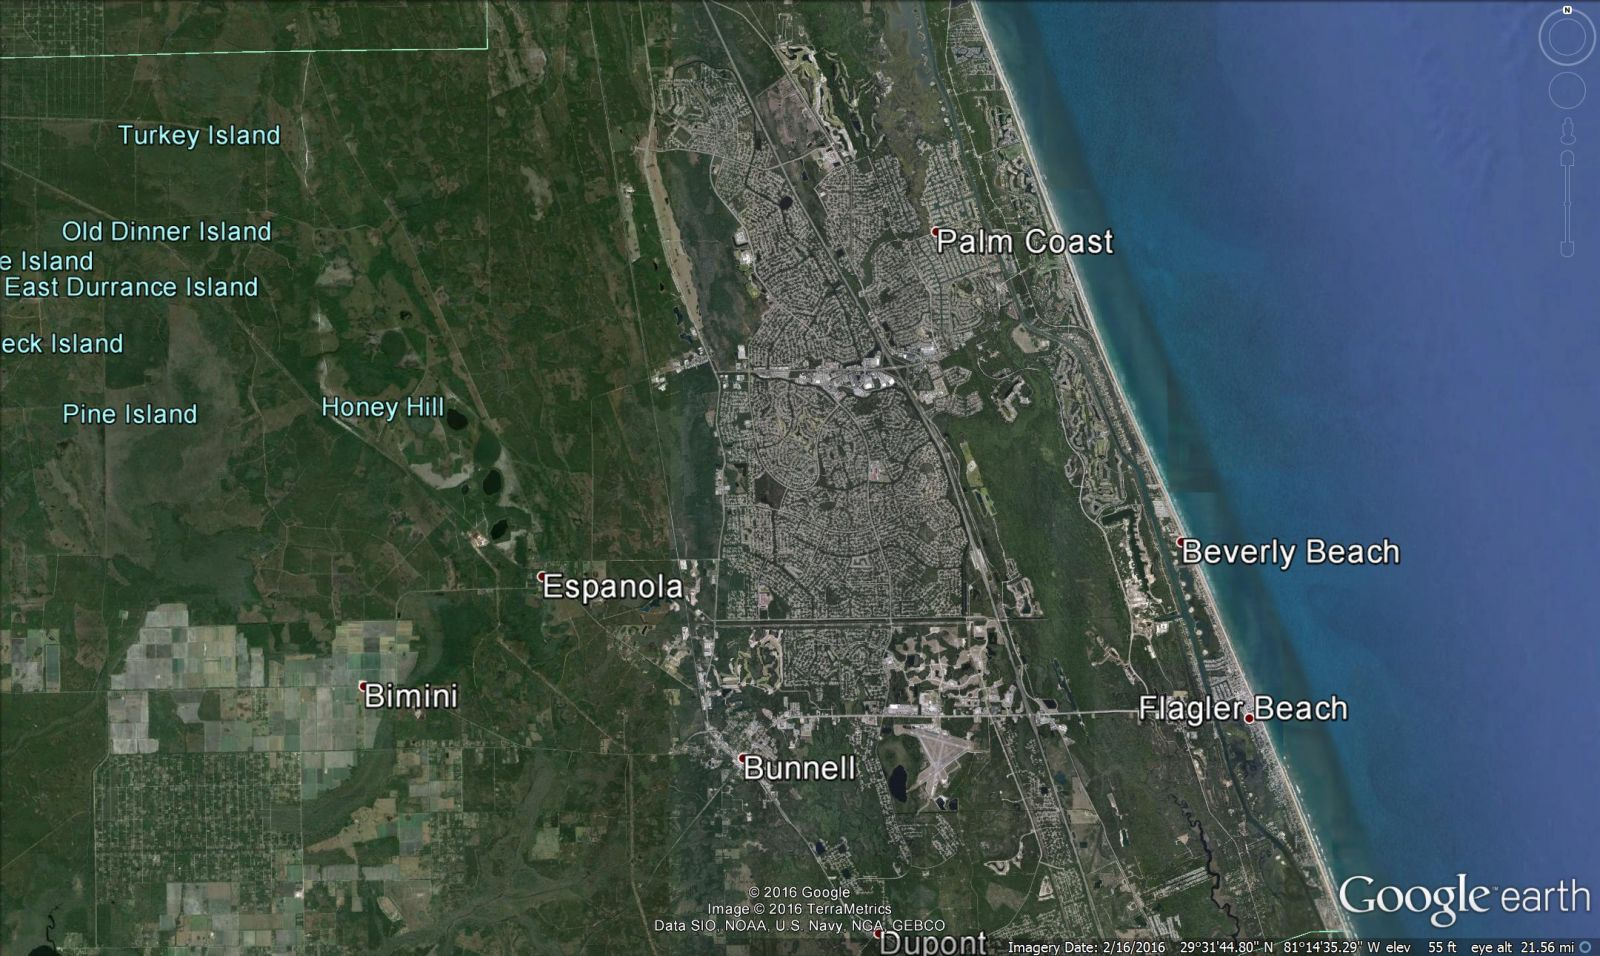 Vacant Residential Lot For Sale In Lee County Florida Land Century - Us counties google earth